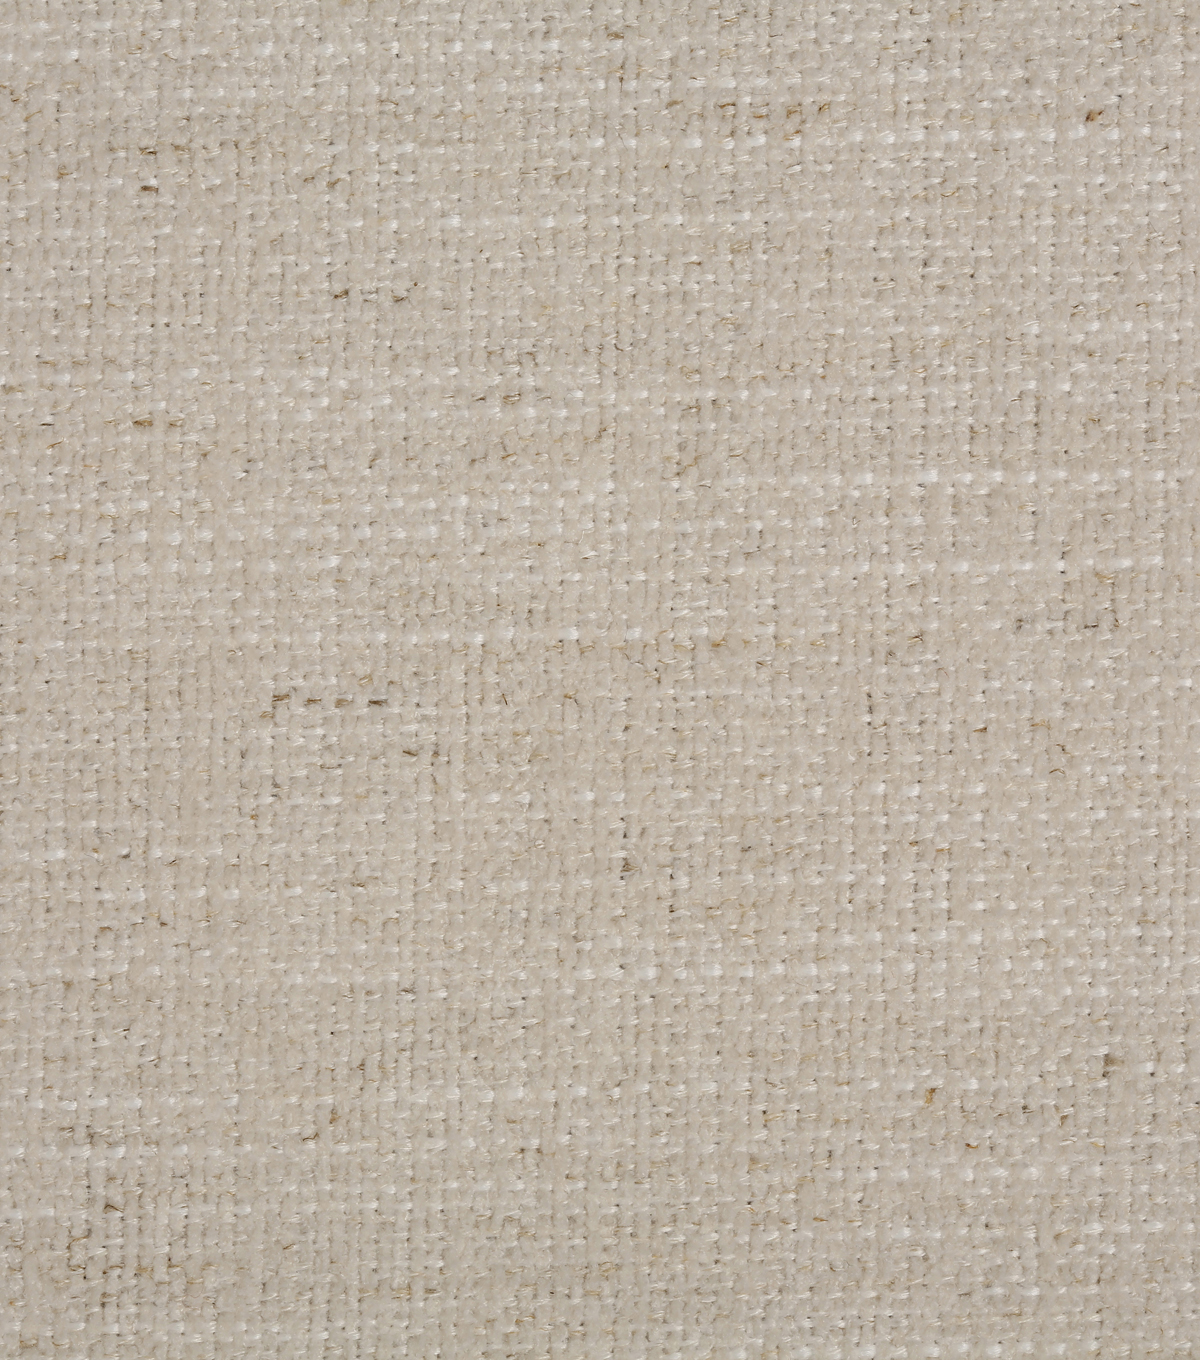 Crypton Upholstery Fabric Swatch-Nomad Eggshell